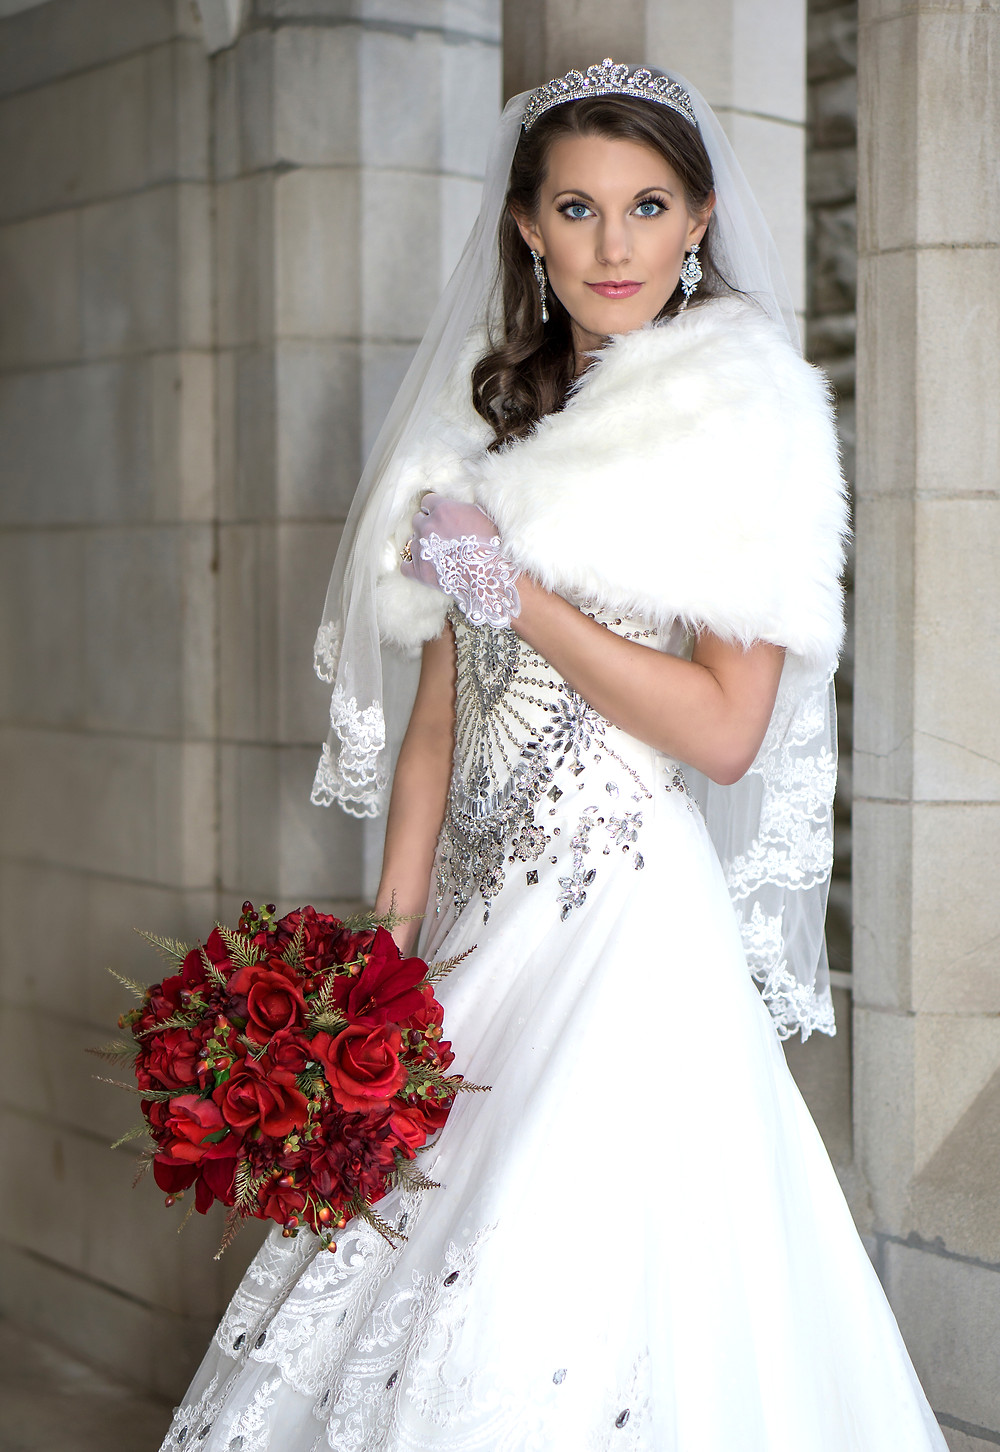 Beautiful Bride wears a crown and fur shawl